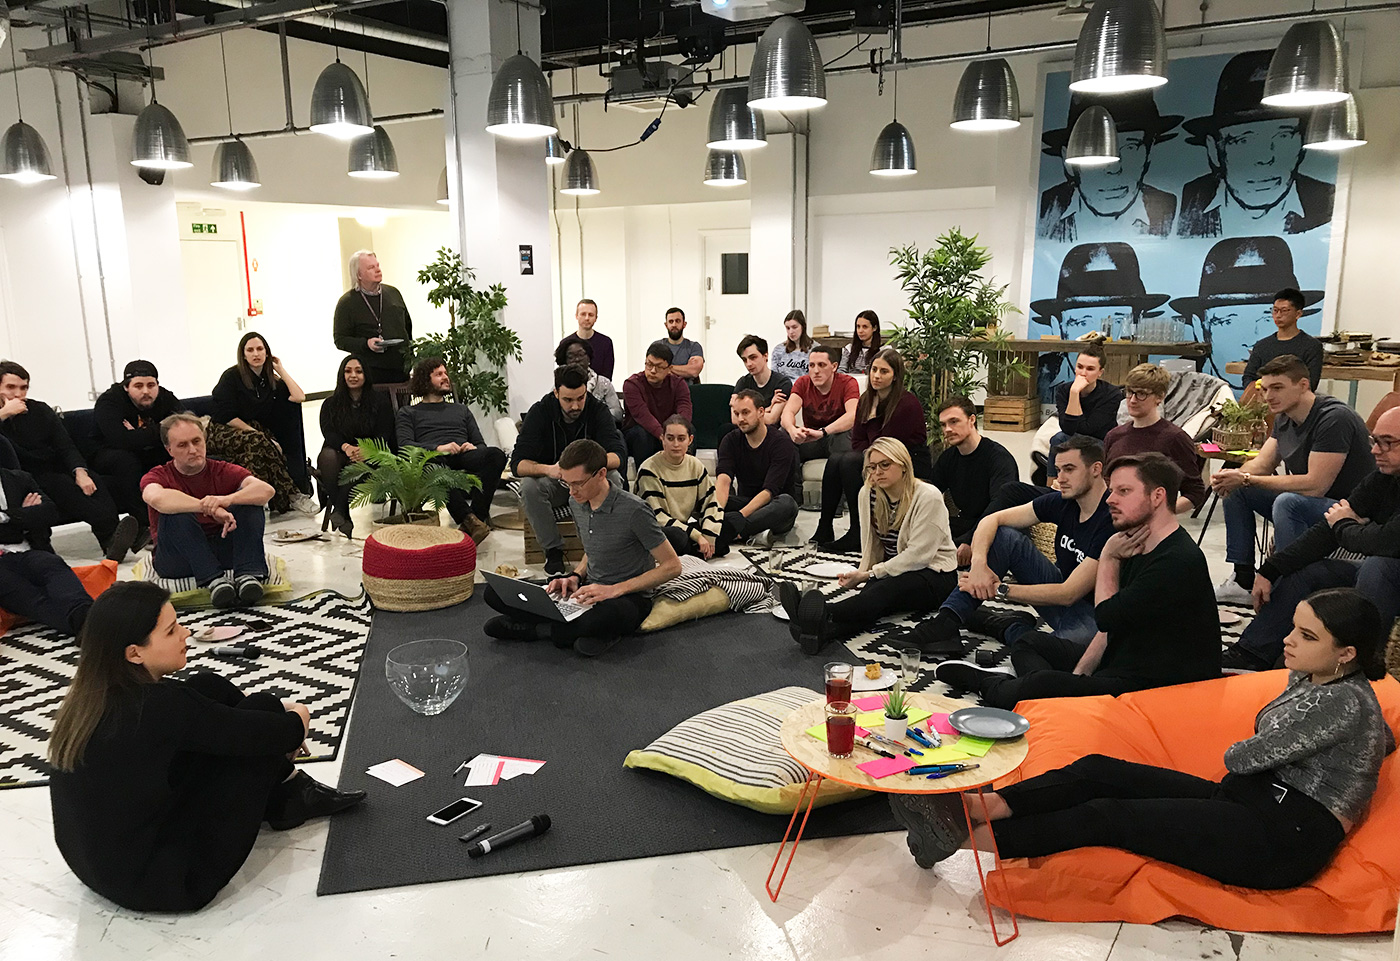 large, relaxed group meeting with people sitting on floor